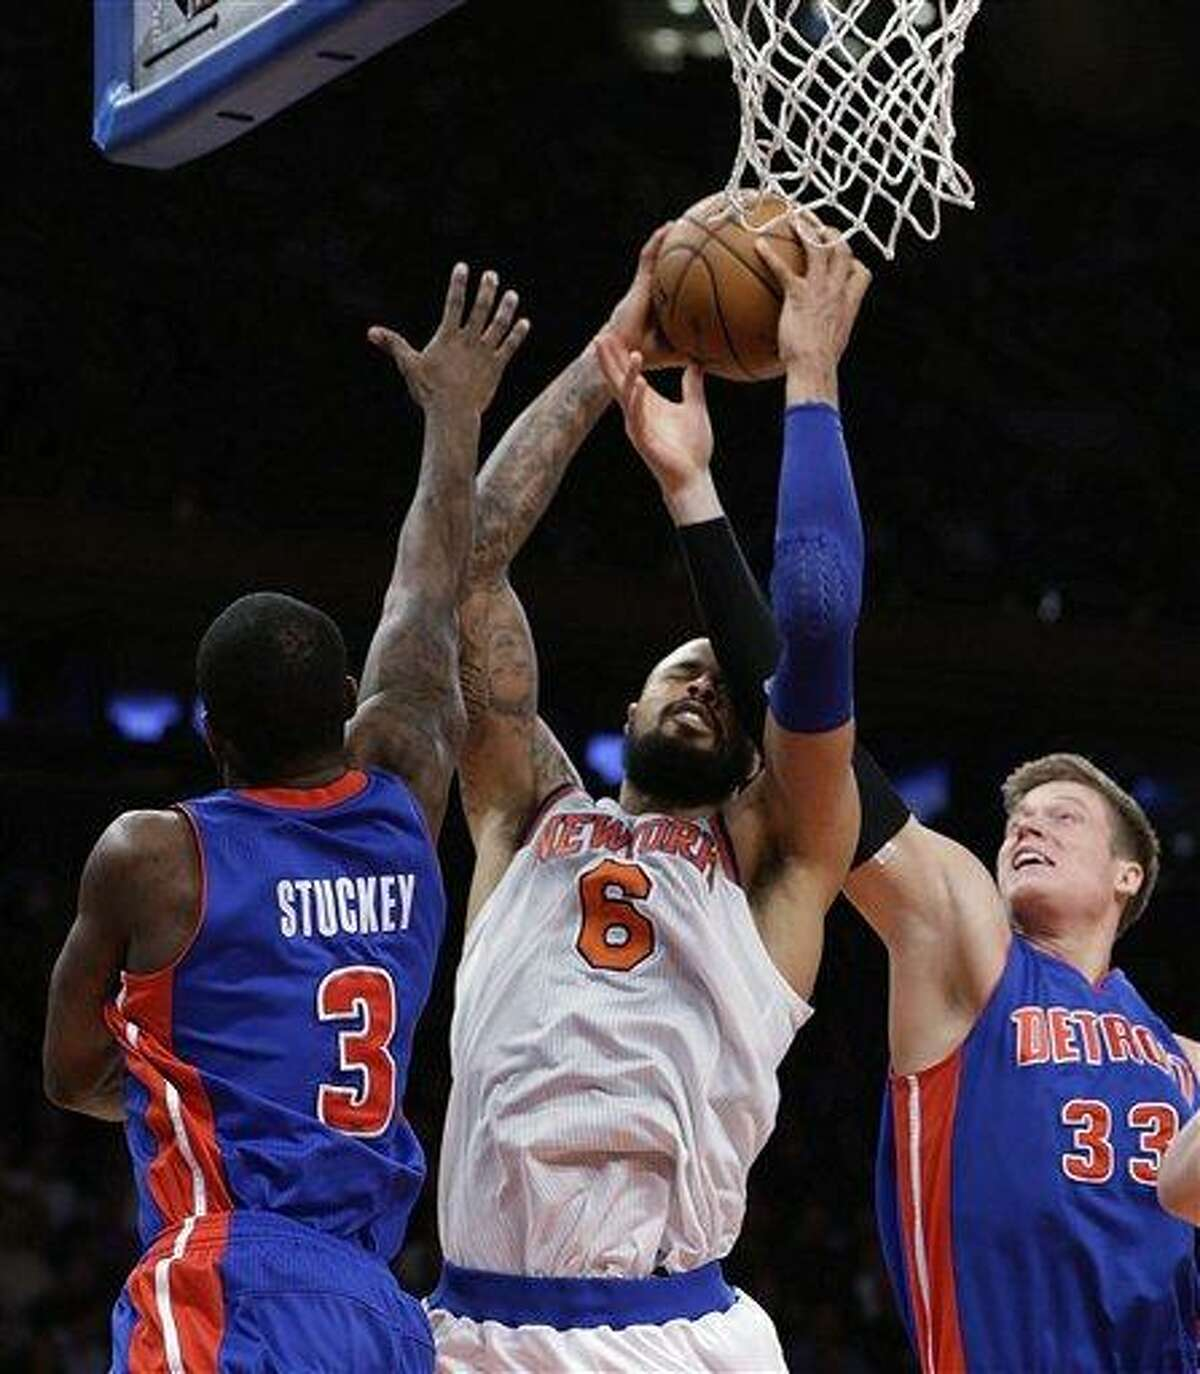 New York Knicks center Tyson Chandler (6) grabs a rebound as Detroit Pistons guard Rodney Stuckey (3) and forward Jonas Jerebko (33) of Sweden try to get the ball back beneath the Pistons' basket in the second half of an NBA basketball game at Madison Square Garden in New York, Monday, Feb. 4, 2013. The Knicks won 99-85. (AP Photo/Kathy Willens)